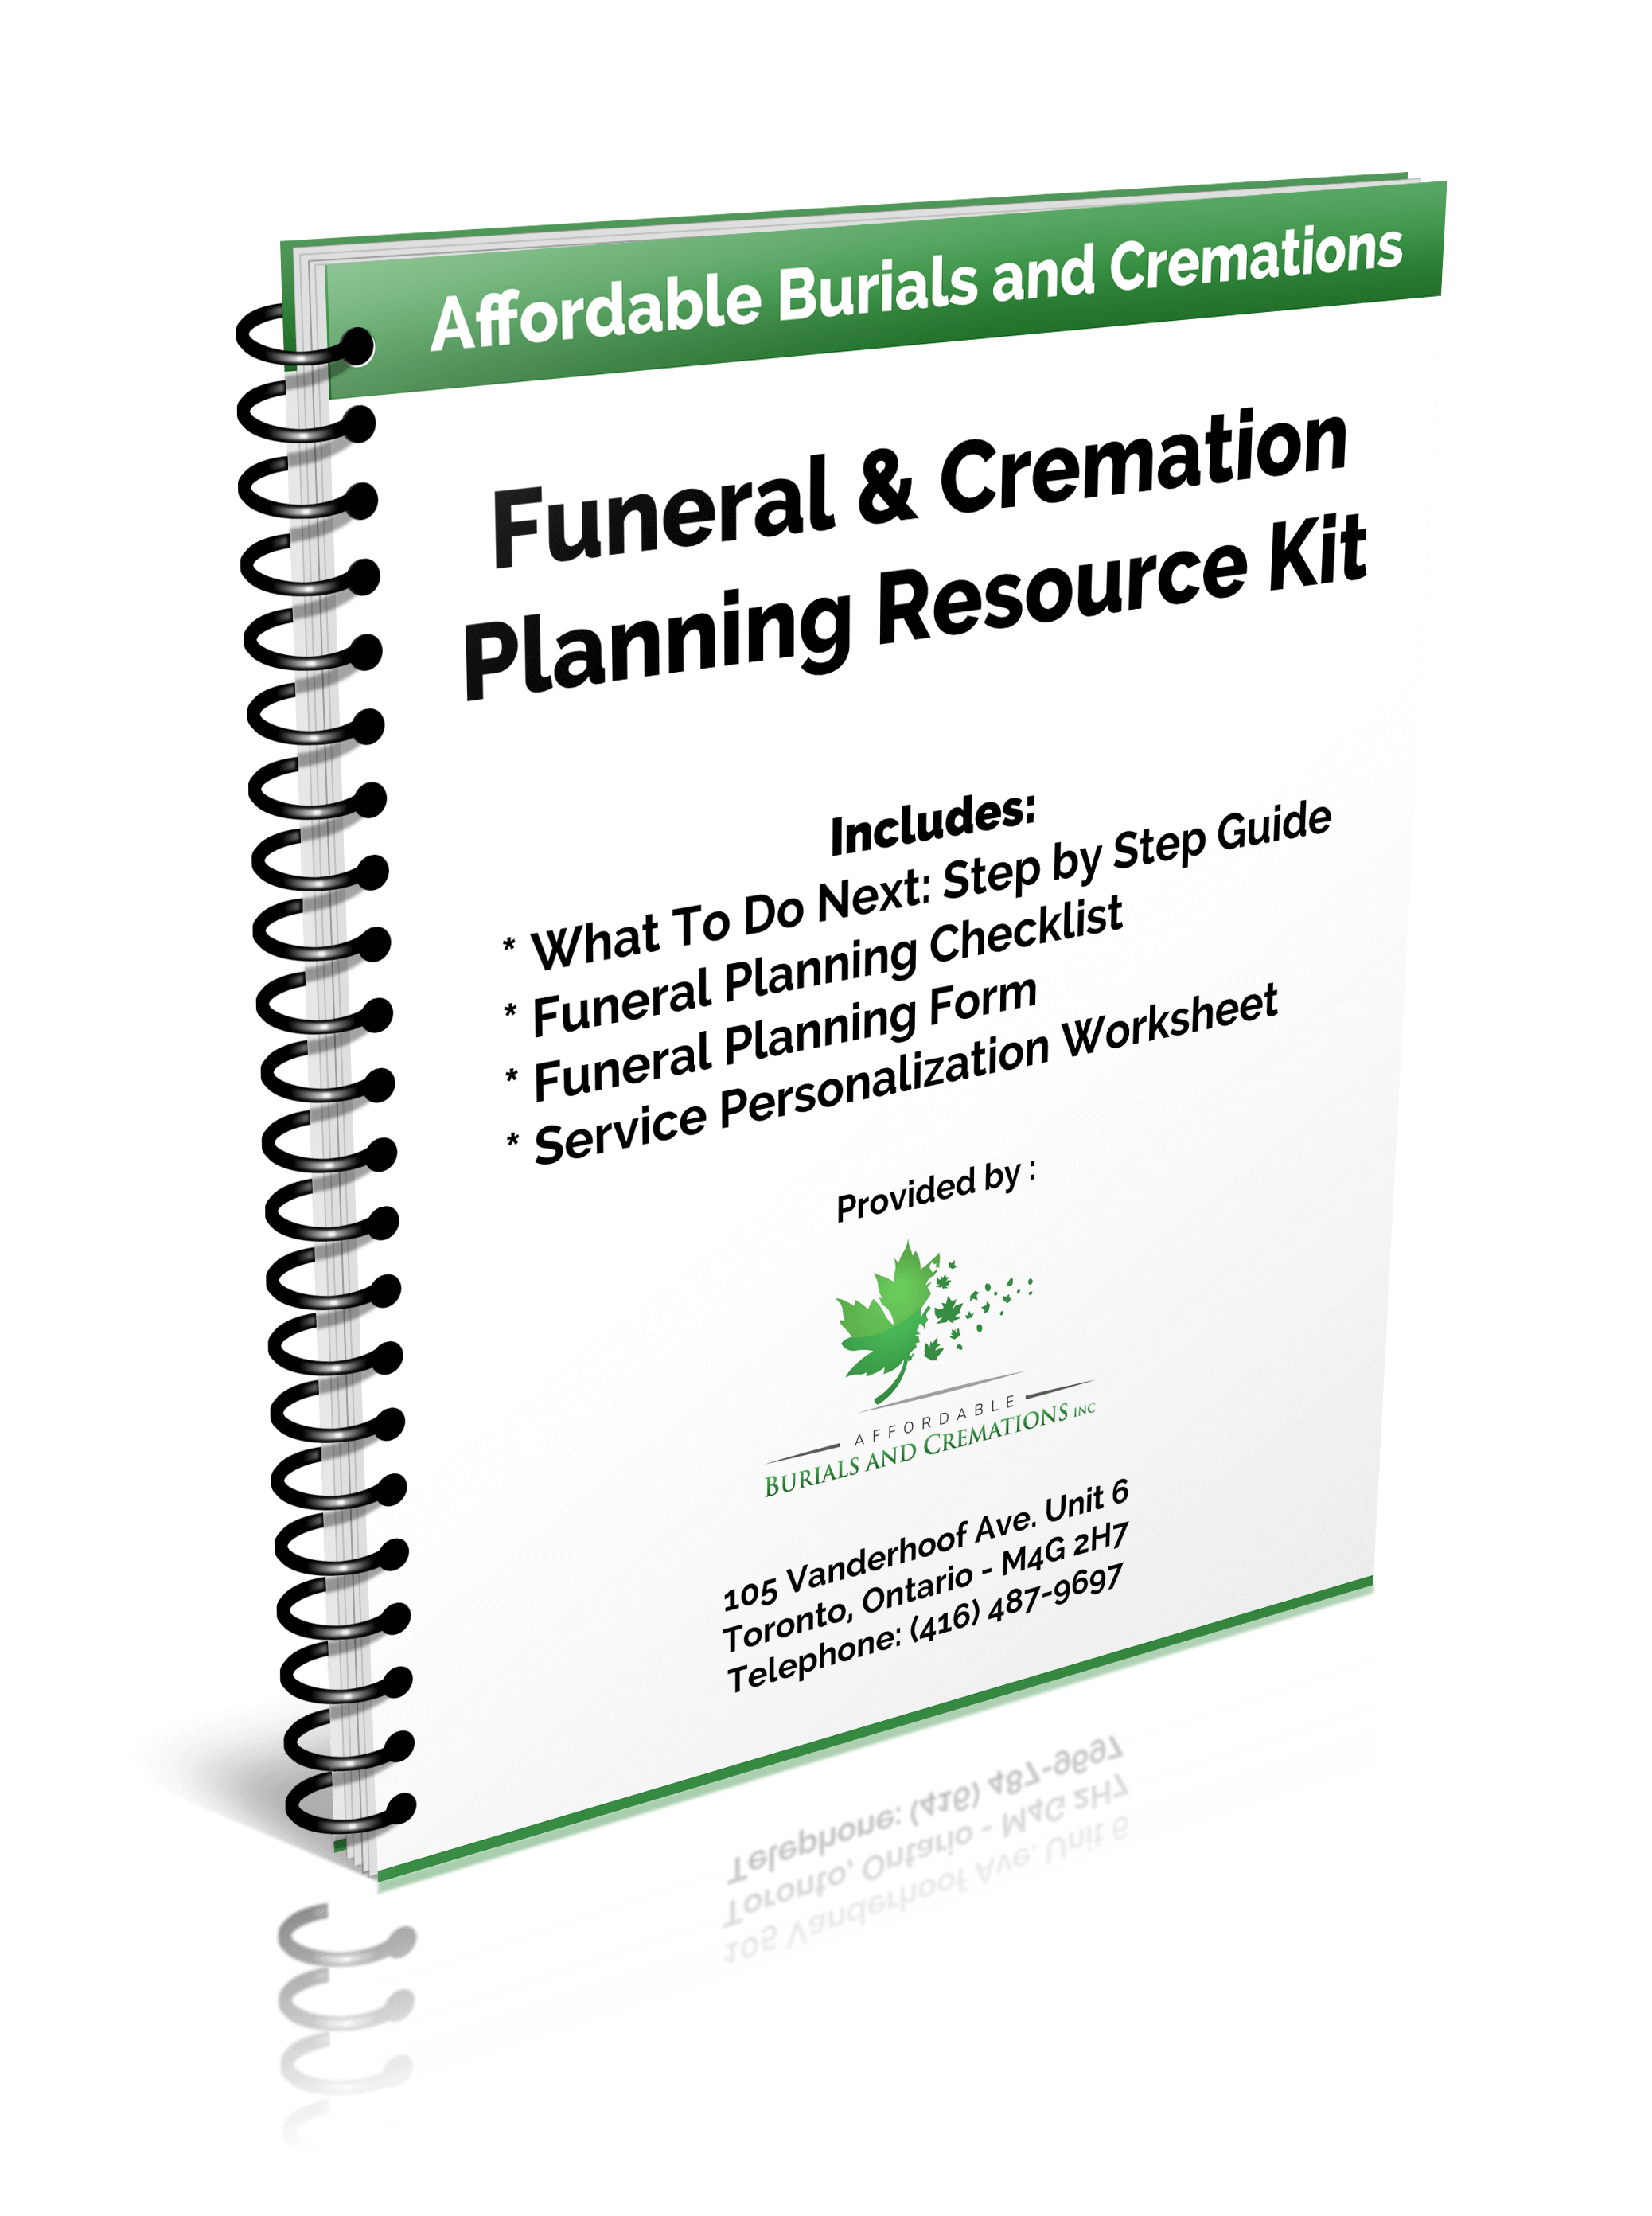 AffordableBurialsandCremations.ca-Funeral-Cremation-Resource-Kit